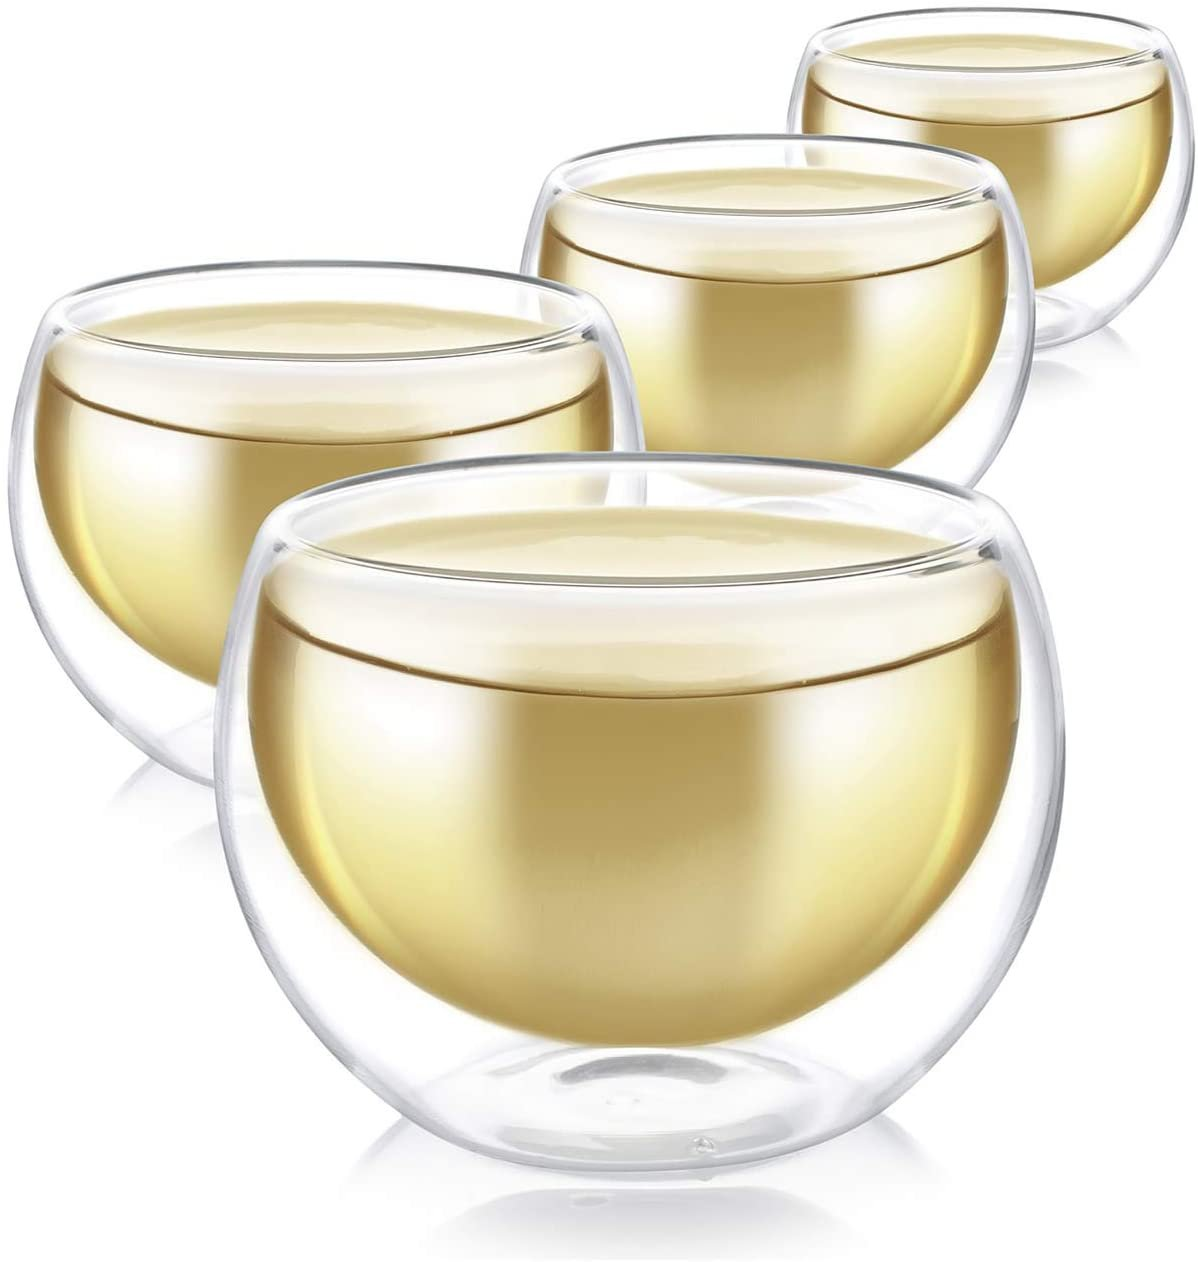 Teabloom Tea / Espresso Cups - Double Wall Insulated - Set of 4 Heat Resistant Borosilicate Glass!